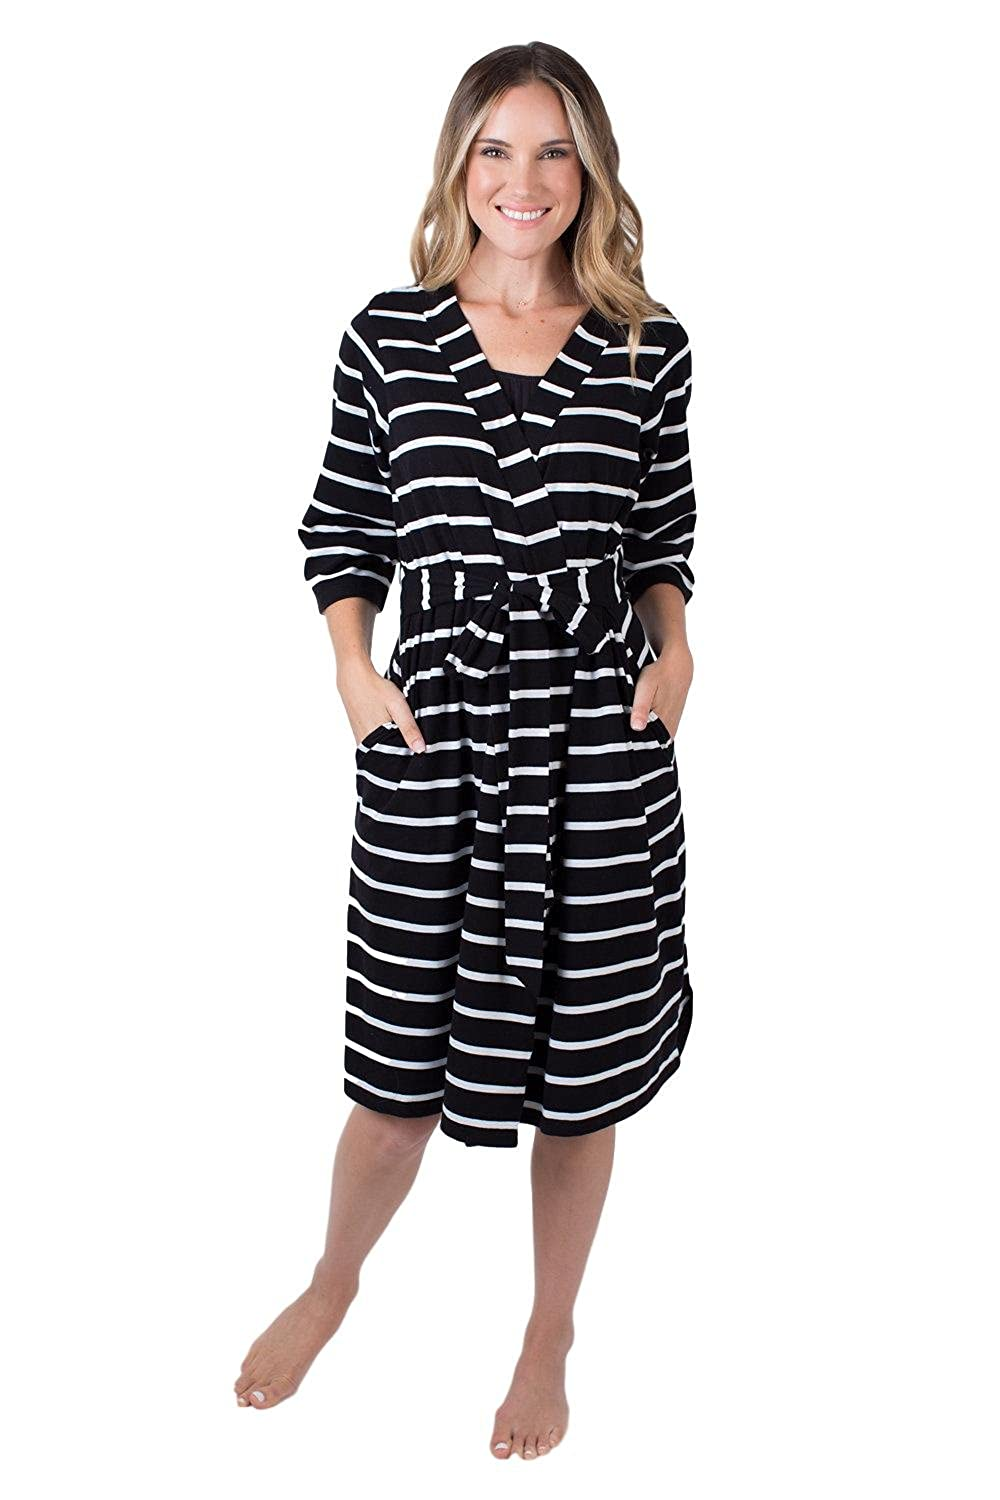 Baby Be Mine Maternity Labor Delivery Nursing Robe Hospital Bag Must Have